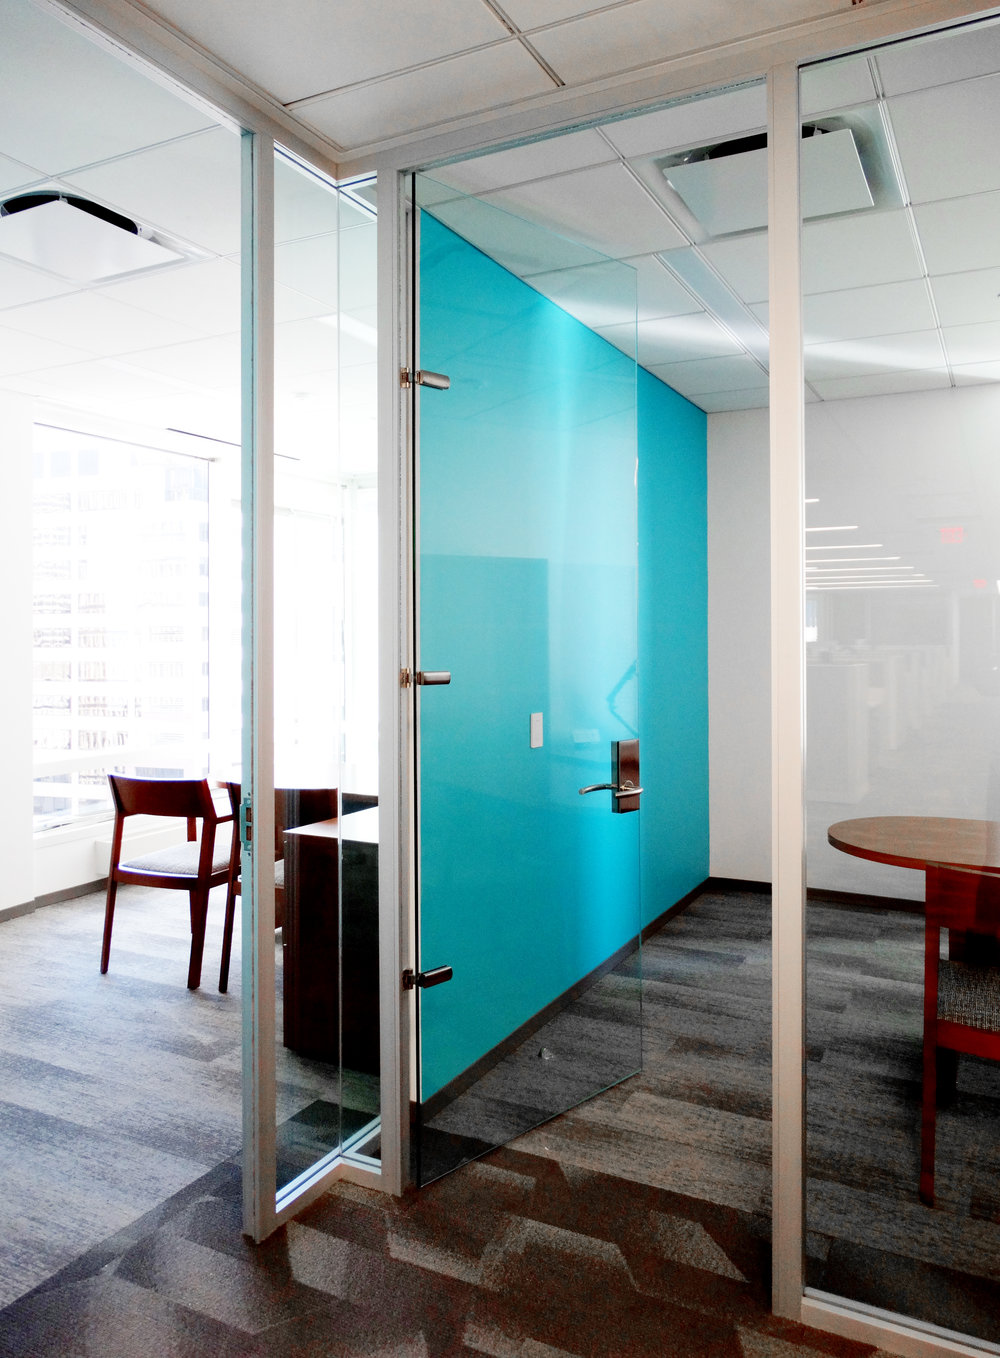 Litespace Demountable Glass Wall Frameless Glass Door - Spaceworks AI.jpg